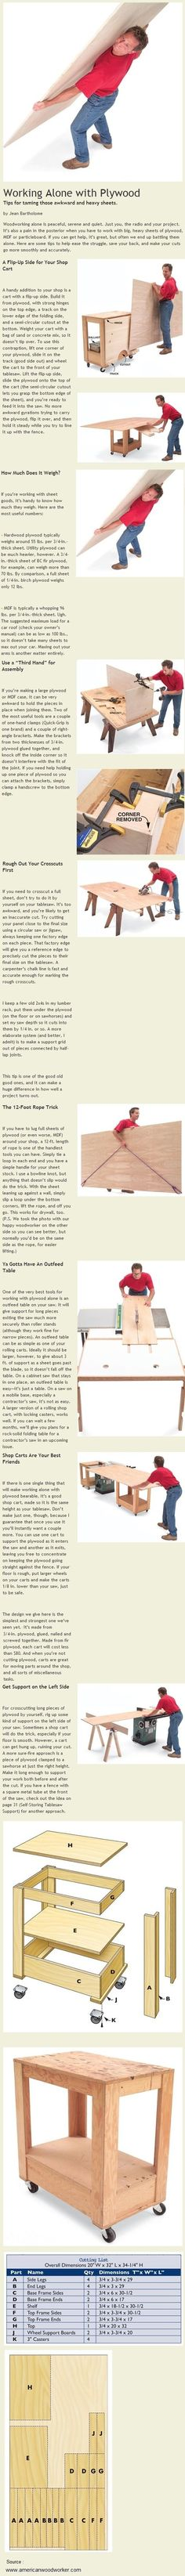 Working Alone with Plywood- Doug you need this